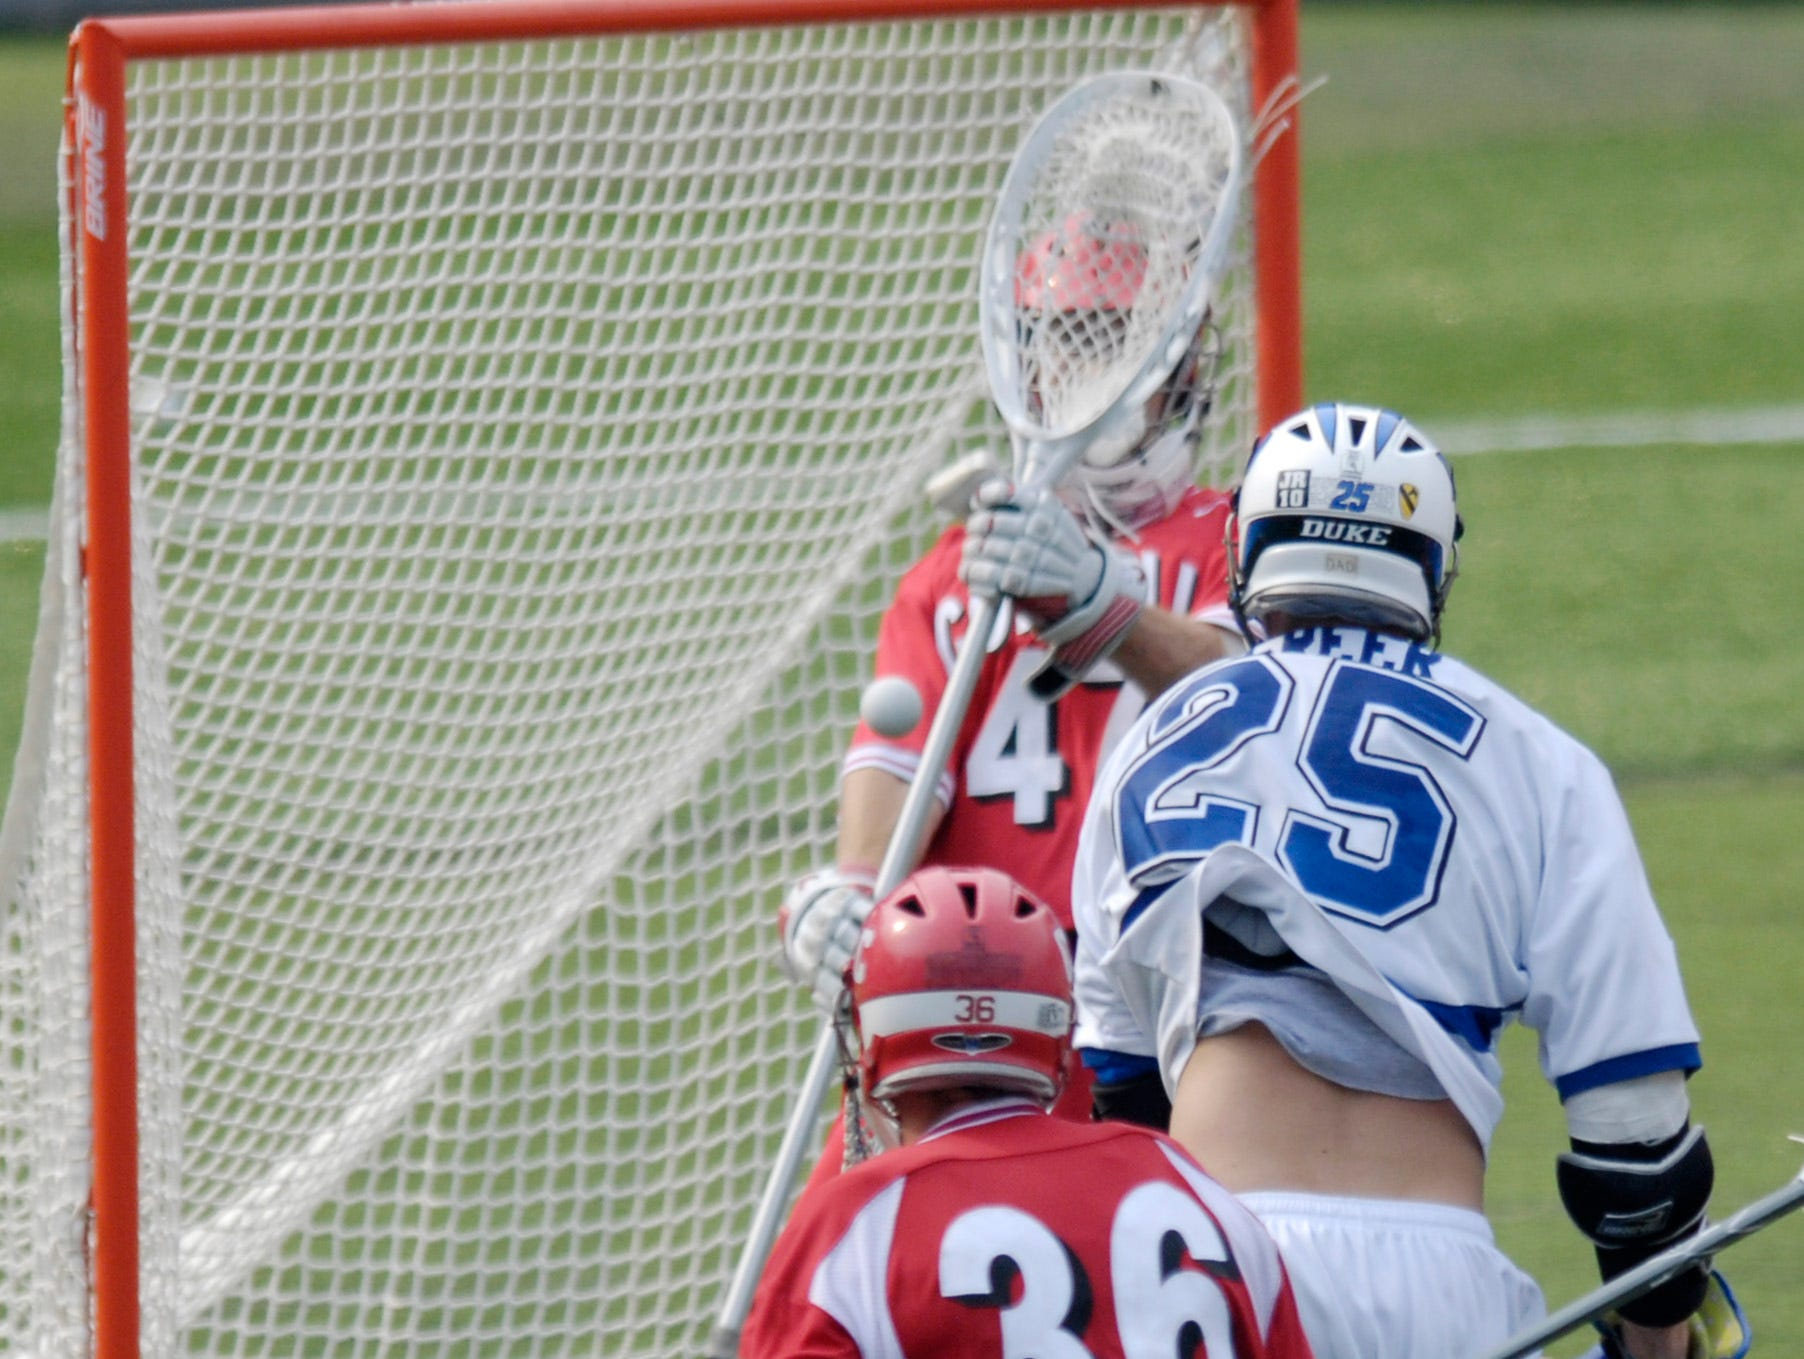 Duke's Zack Greer (25) scores the game-winning goal against Cornell goalie Matt McMonagle (47) as Mitch Belisle (36) looks on during closing seconds during a division one NCAA lacrosse semifinal game, Saturday, May 26, 2007, in Baltimore. Duke won, 12-11.